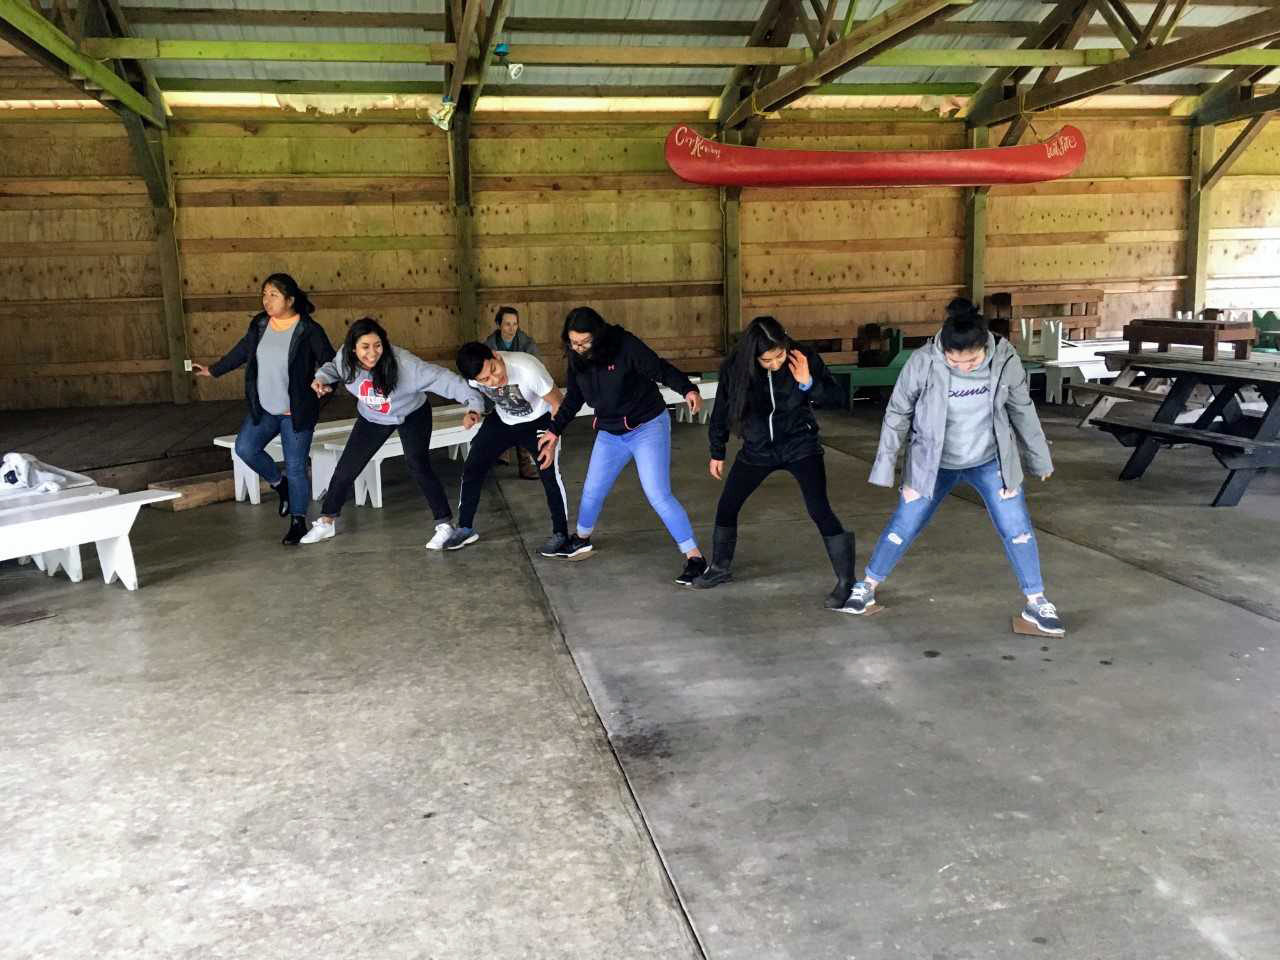 Six Latinx youth stand in a row, foot to foot, their legs spread wide. They're inside a wooden shelter with picnic tables.